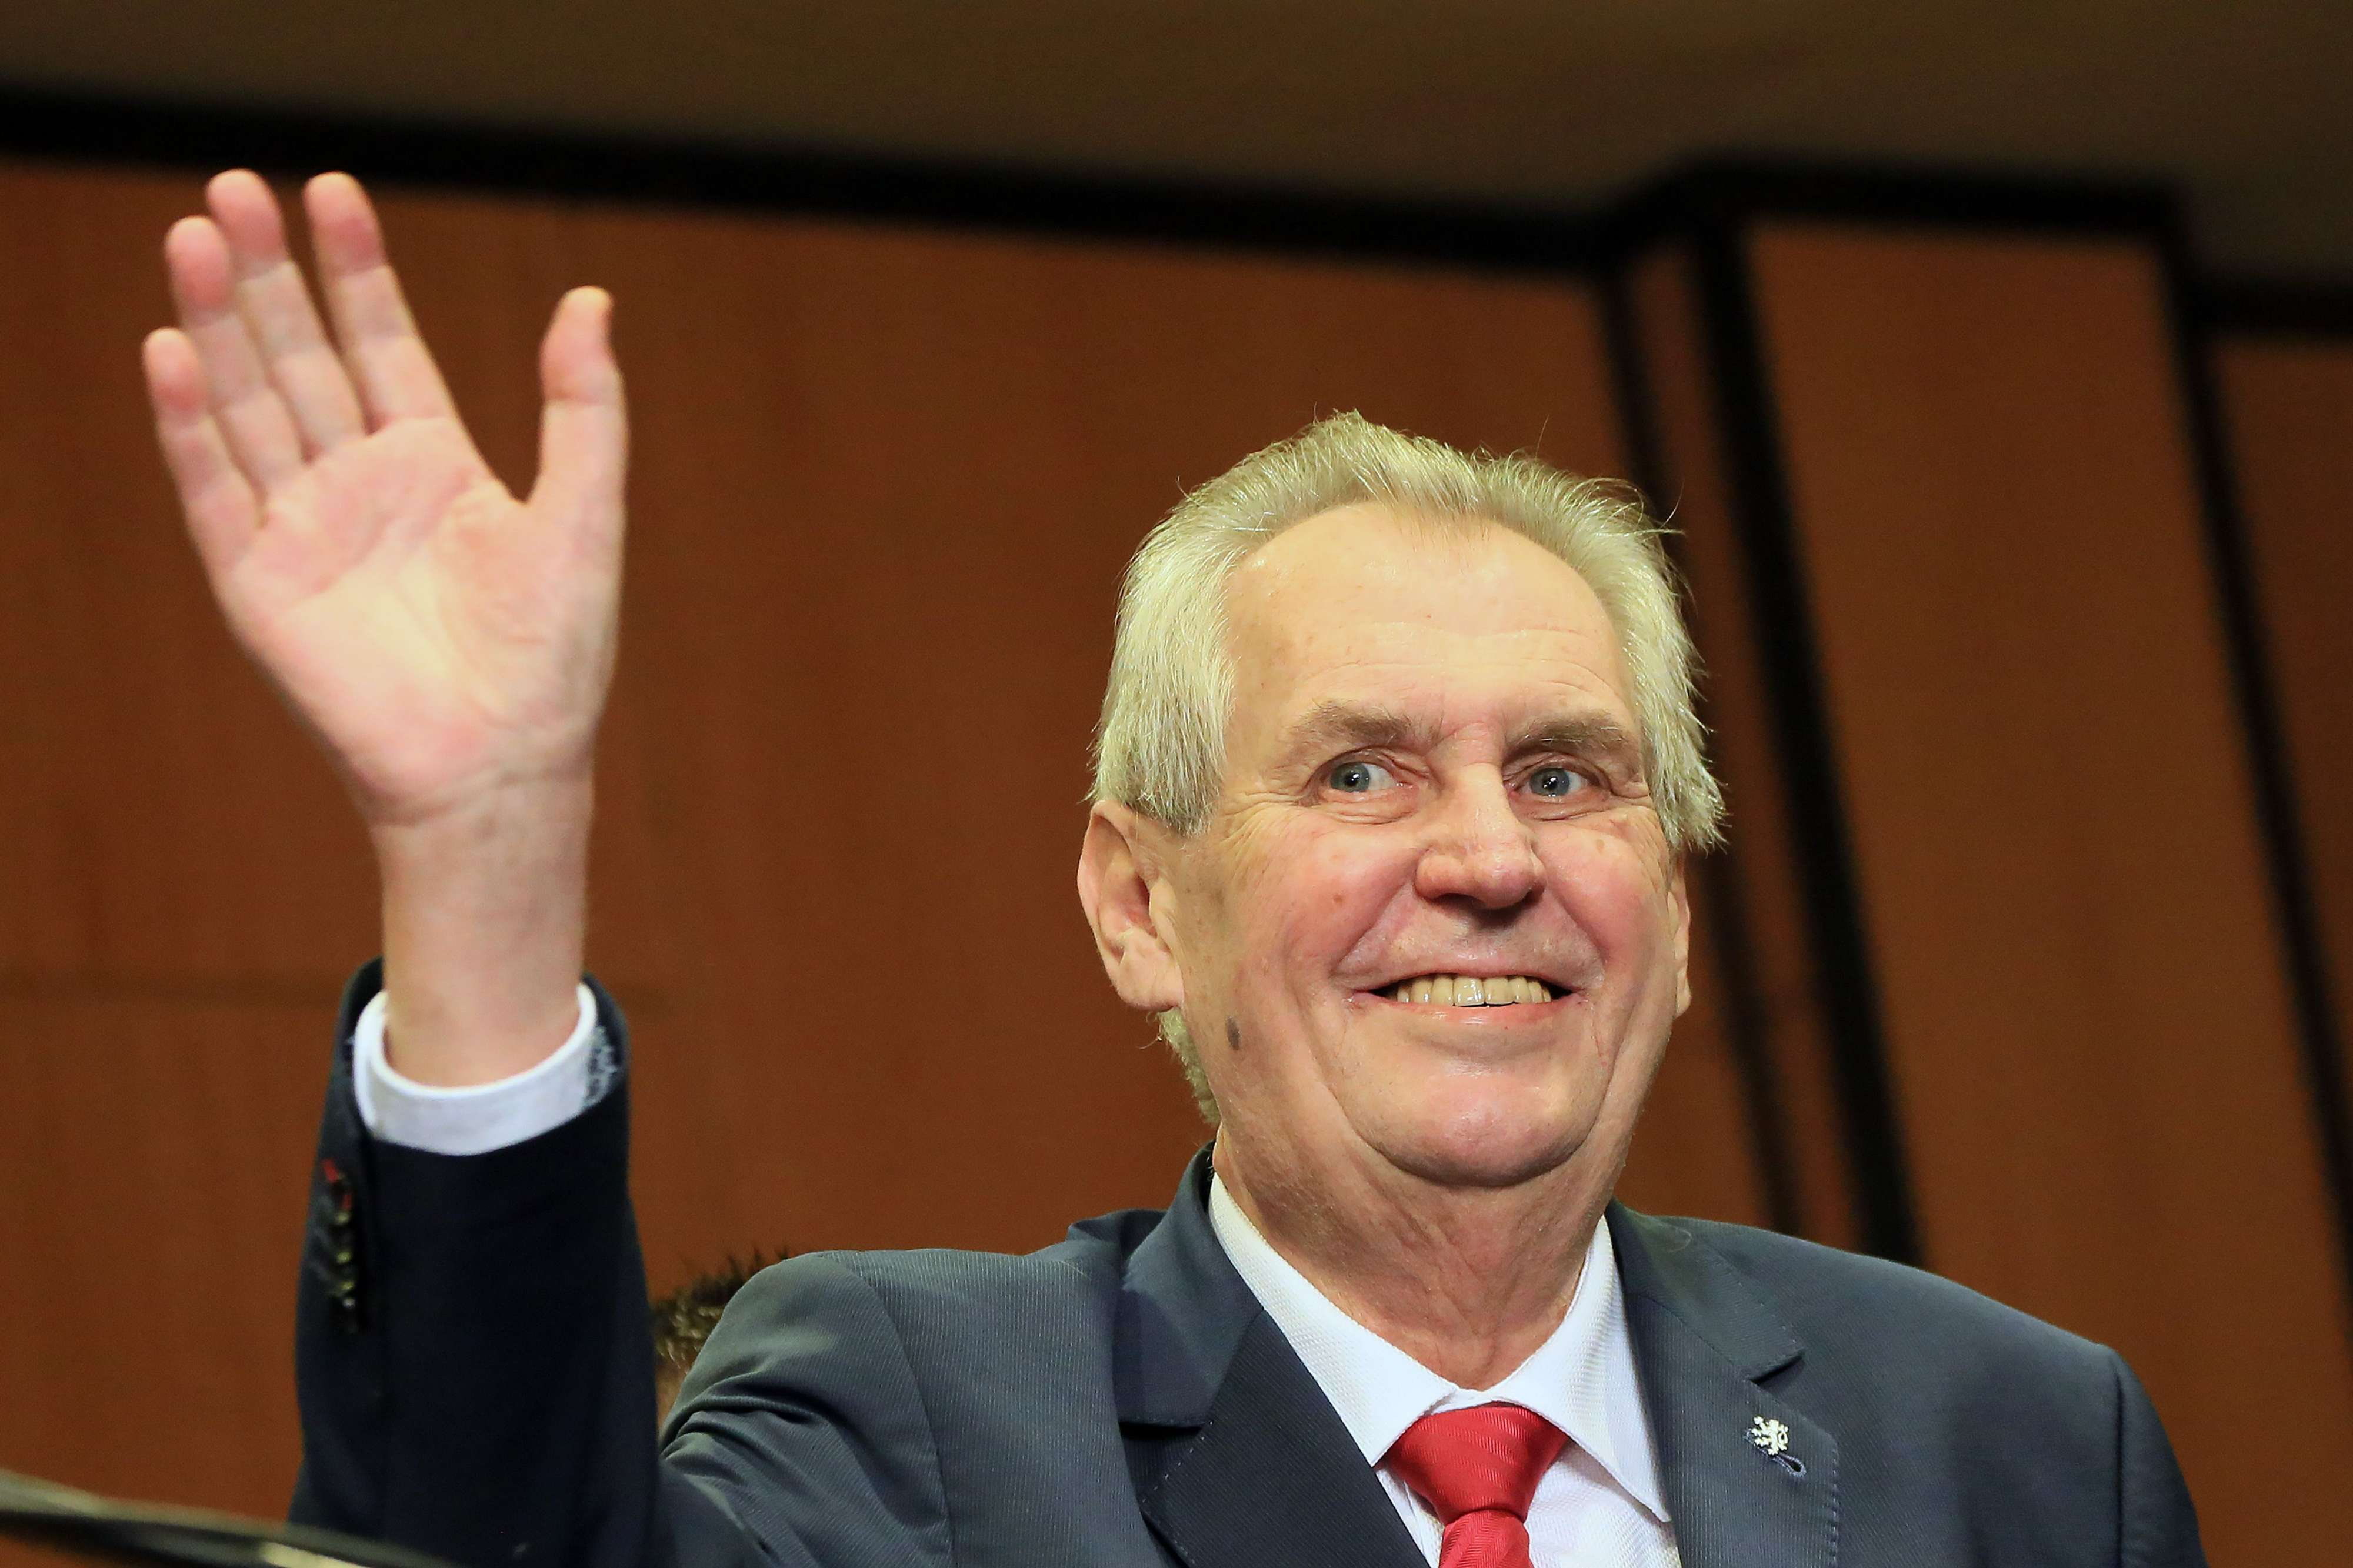 Czech President Milos Zeman waves to an audience in Prague. (AFP)